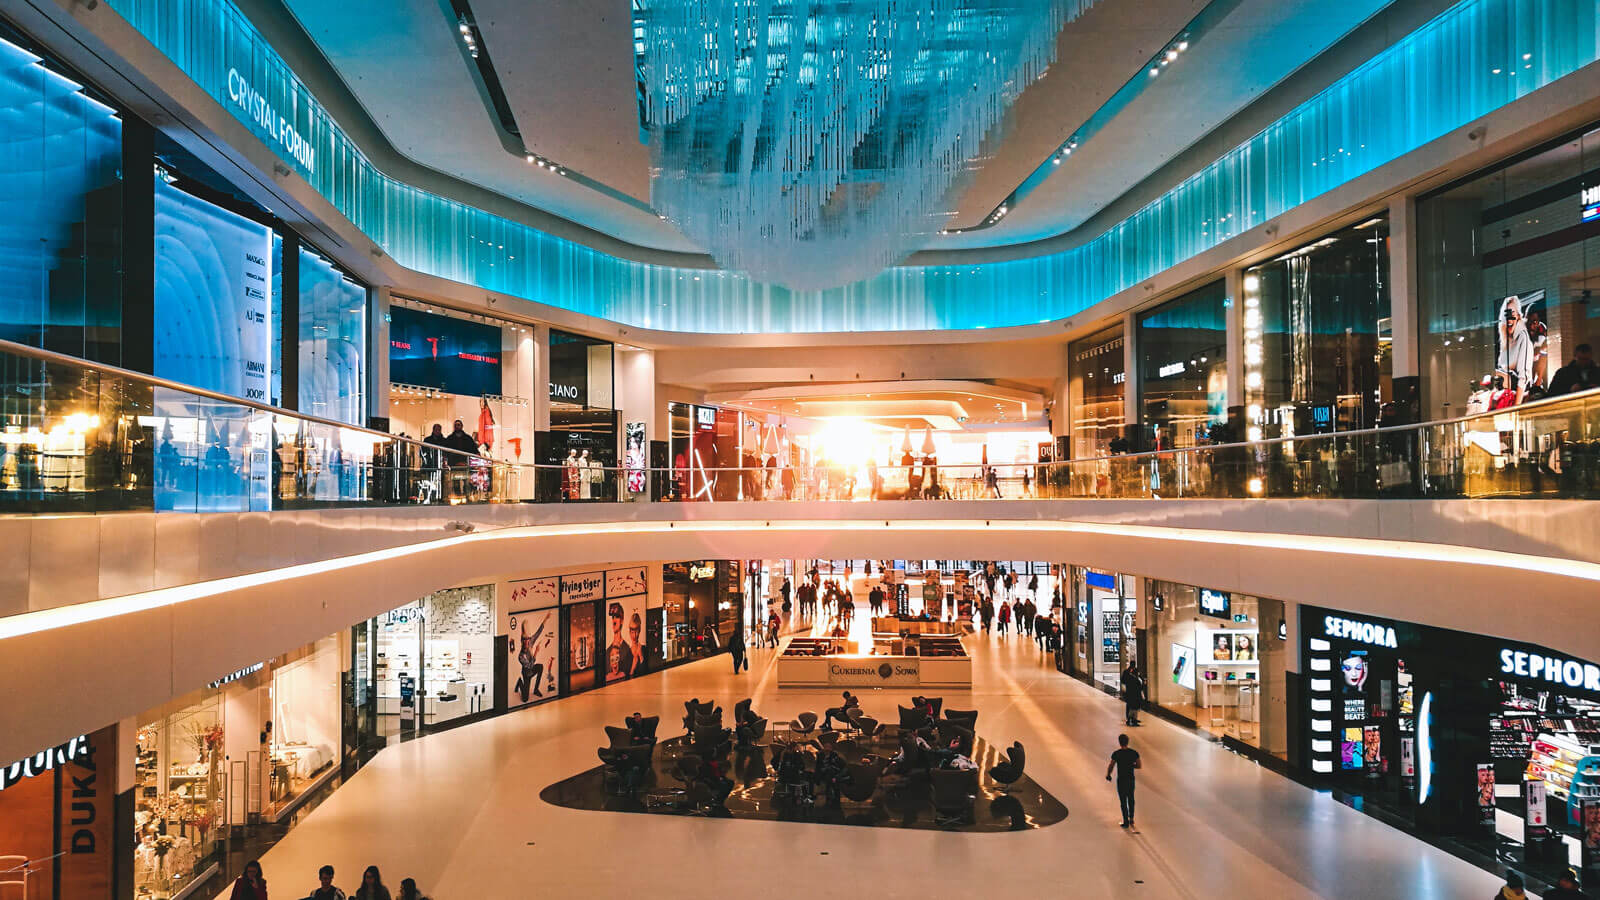 Channel innovations threatens the traditional retail business